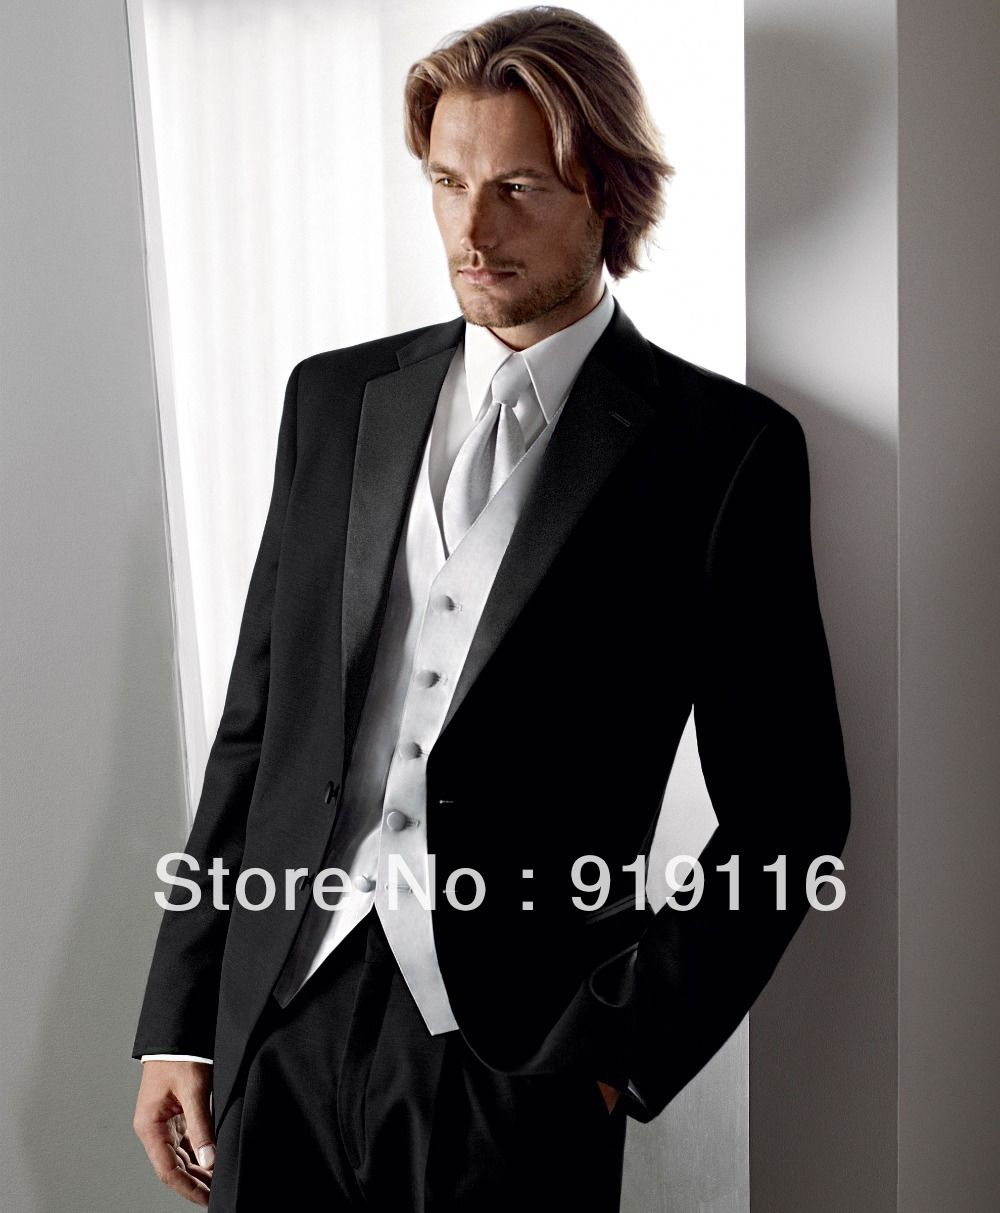 2014 Custom made Black Groom suit /Wedding suit for men /Prom Suit ...